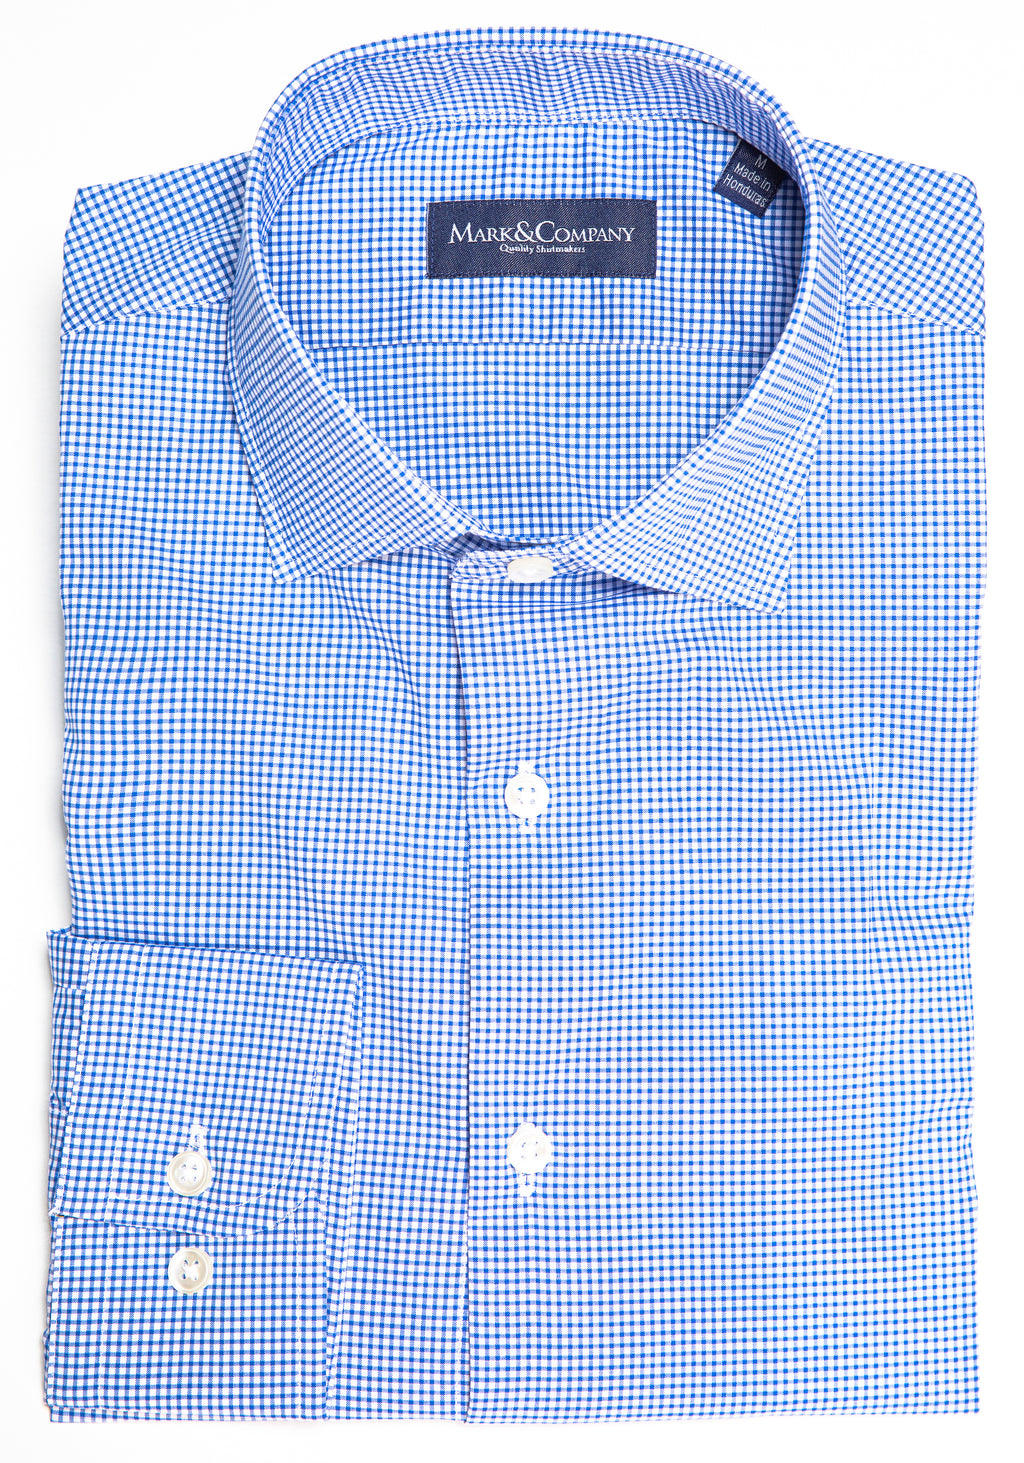 Classic Blue Mini Check Spread Collar Shirt